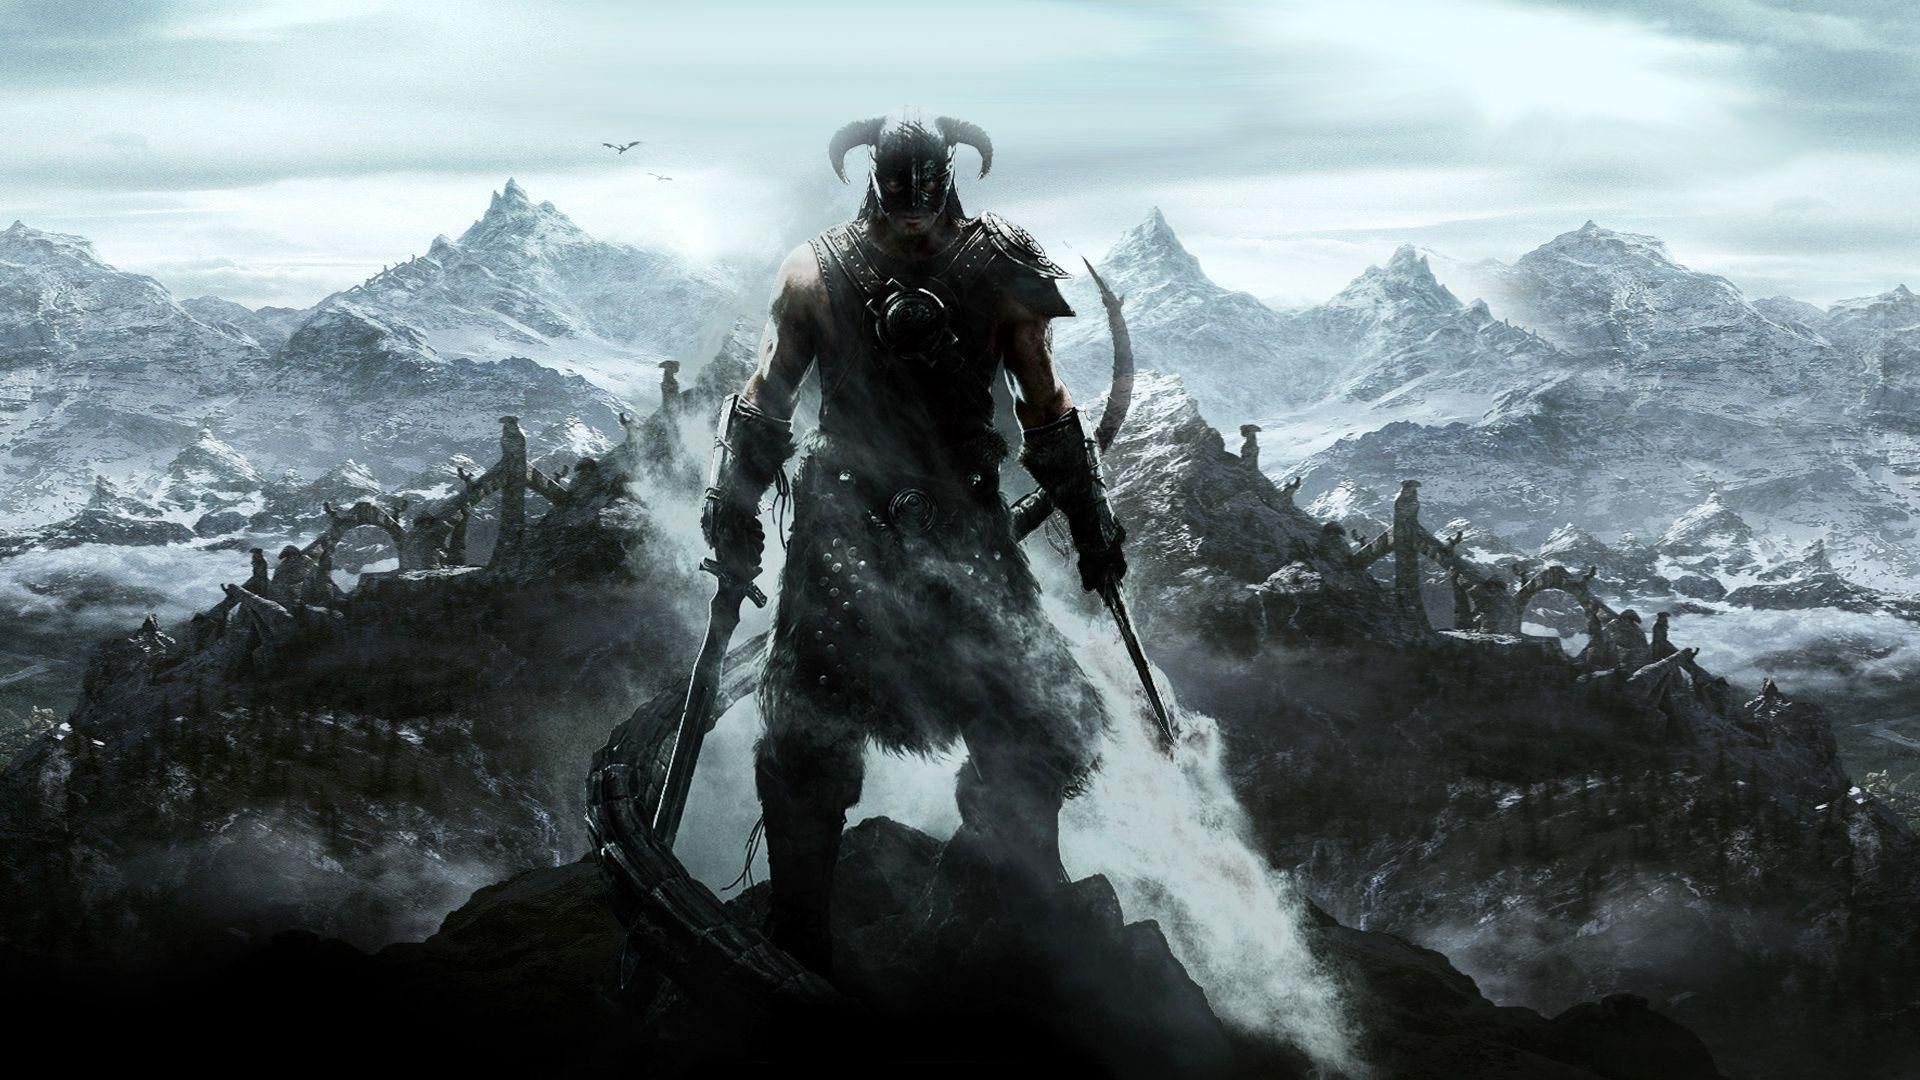 Skyrim Wallpaper Collection For Free Download | HD Wallpapers ...